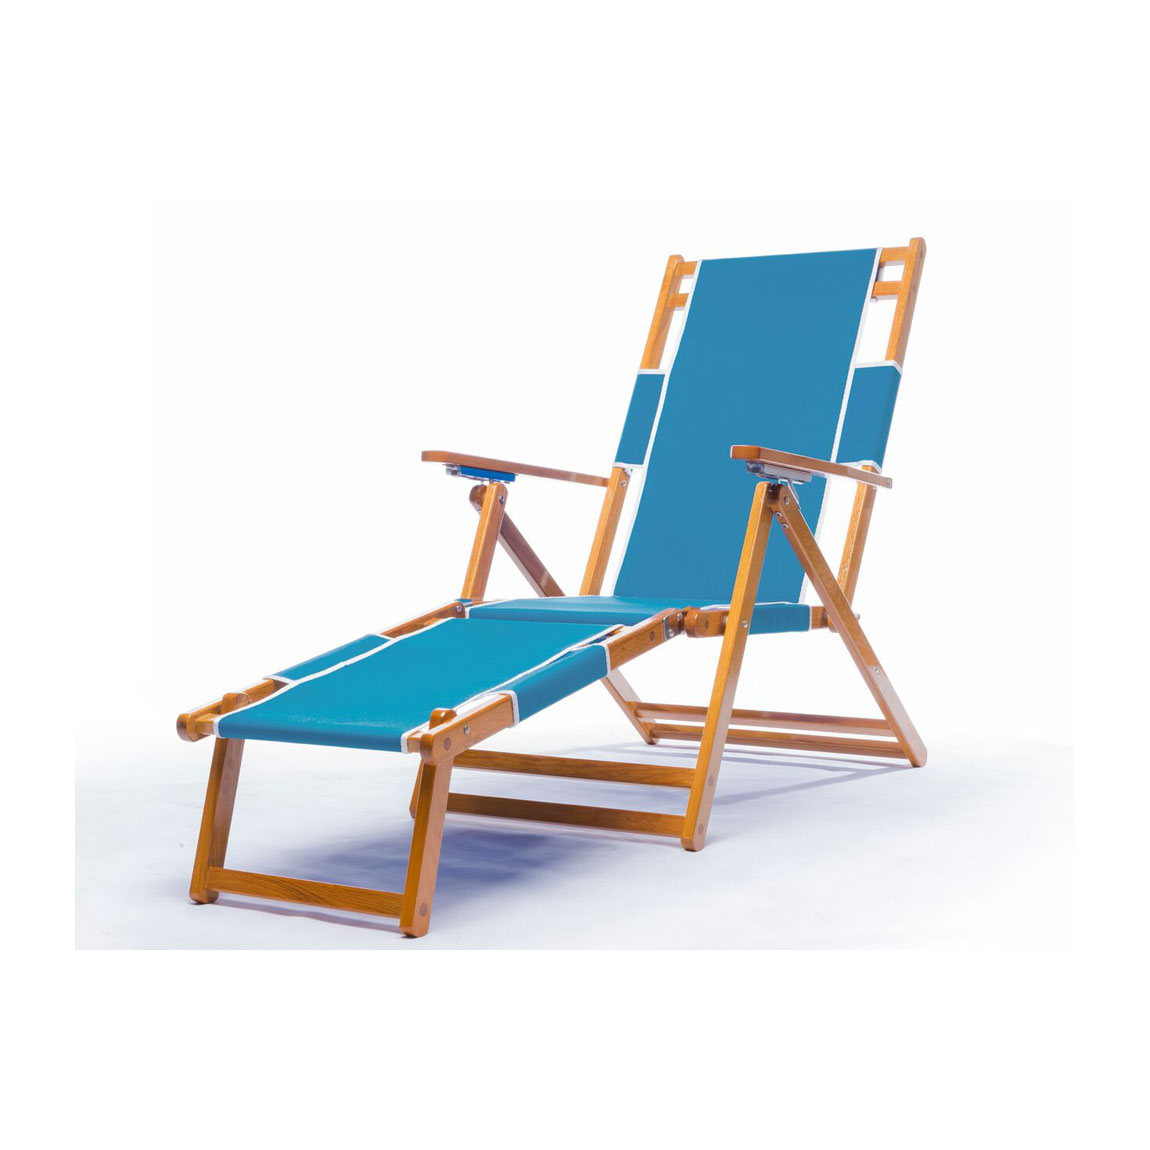 Heavy duty commercial grade oak wood beach chair chaise for Chaise commercial